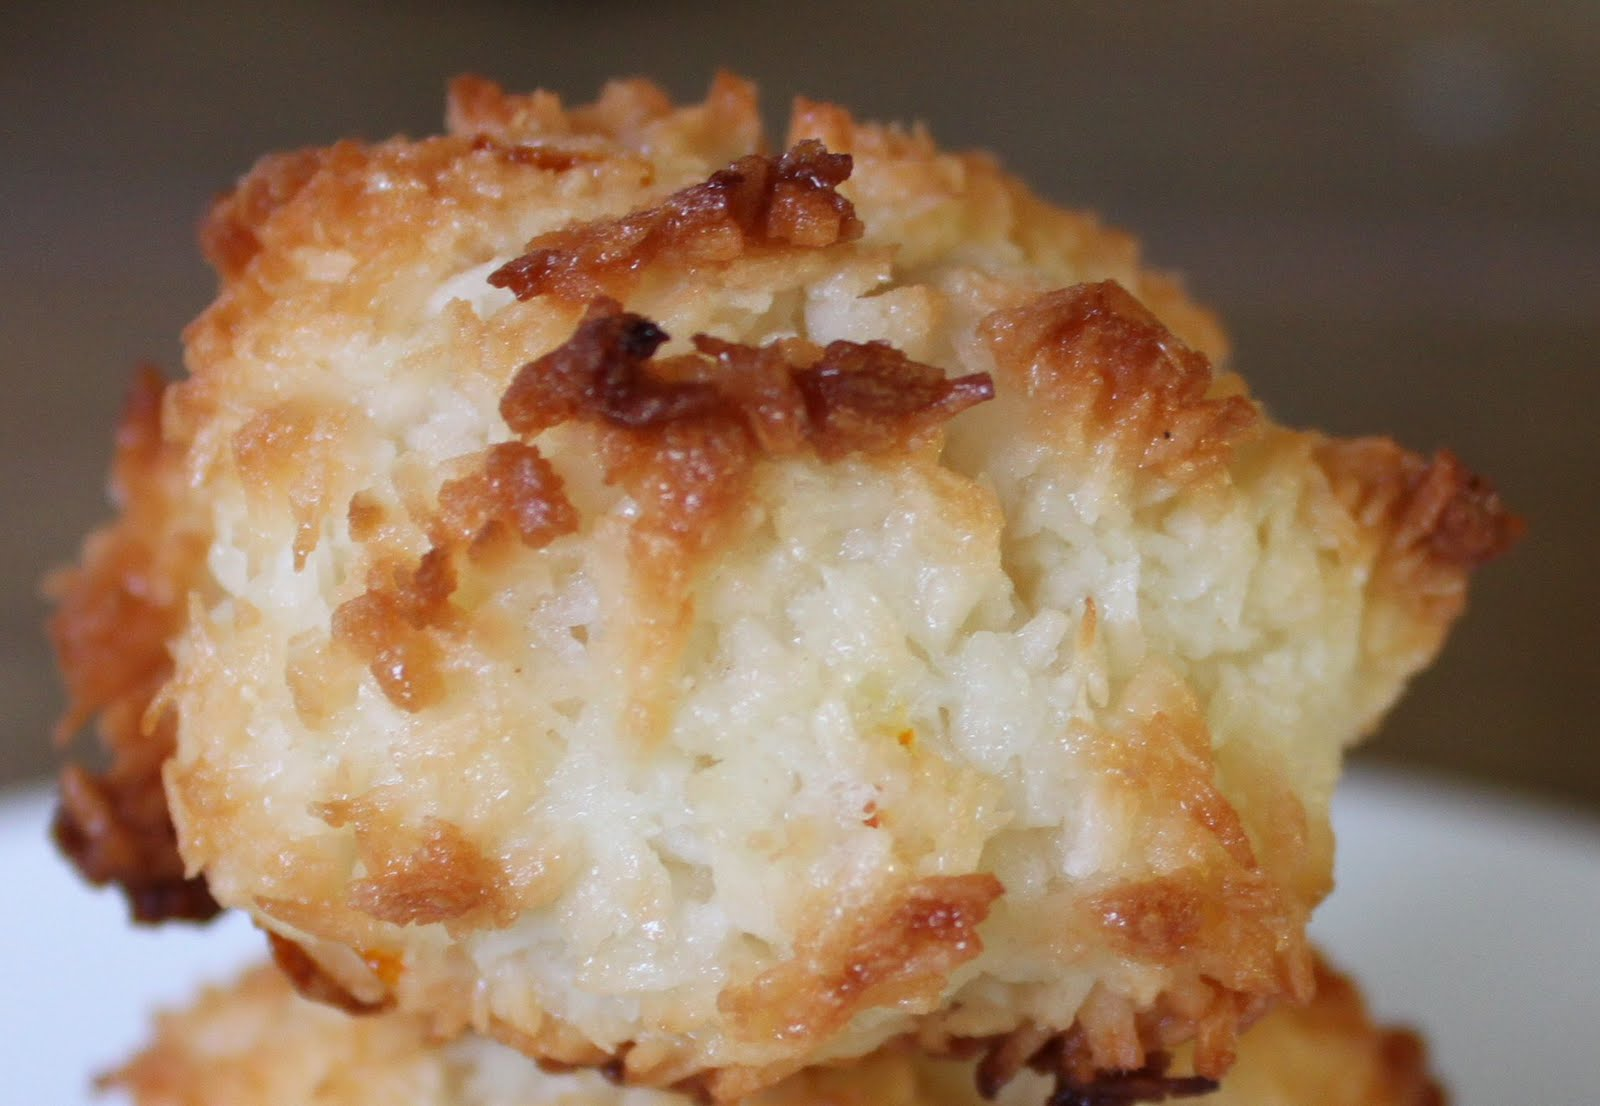 So, I set out to make the coconut macaroons today, which is 84 degrees ...